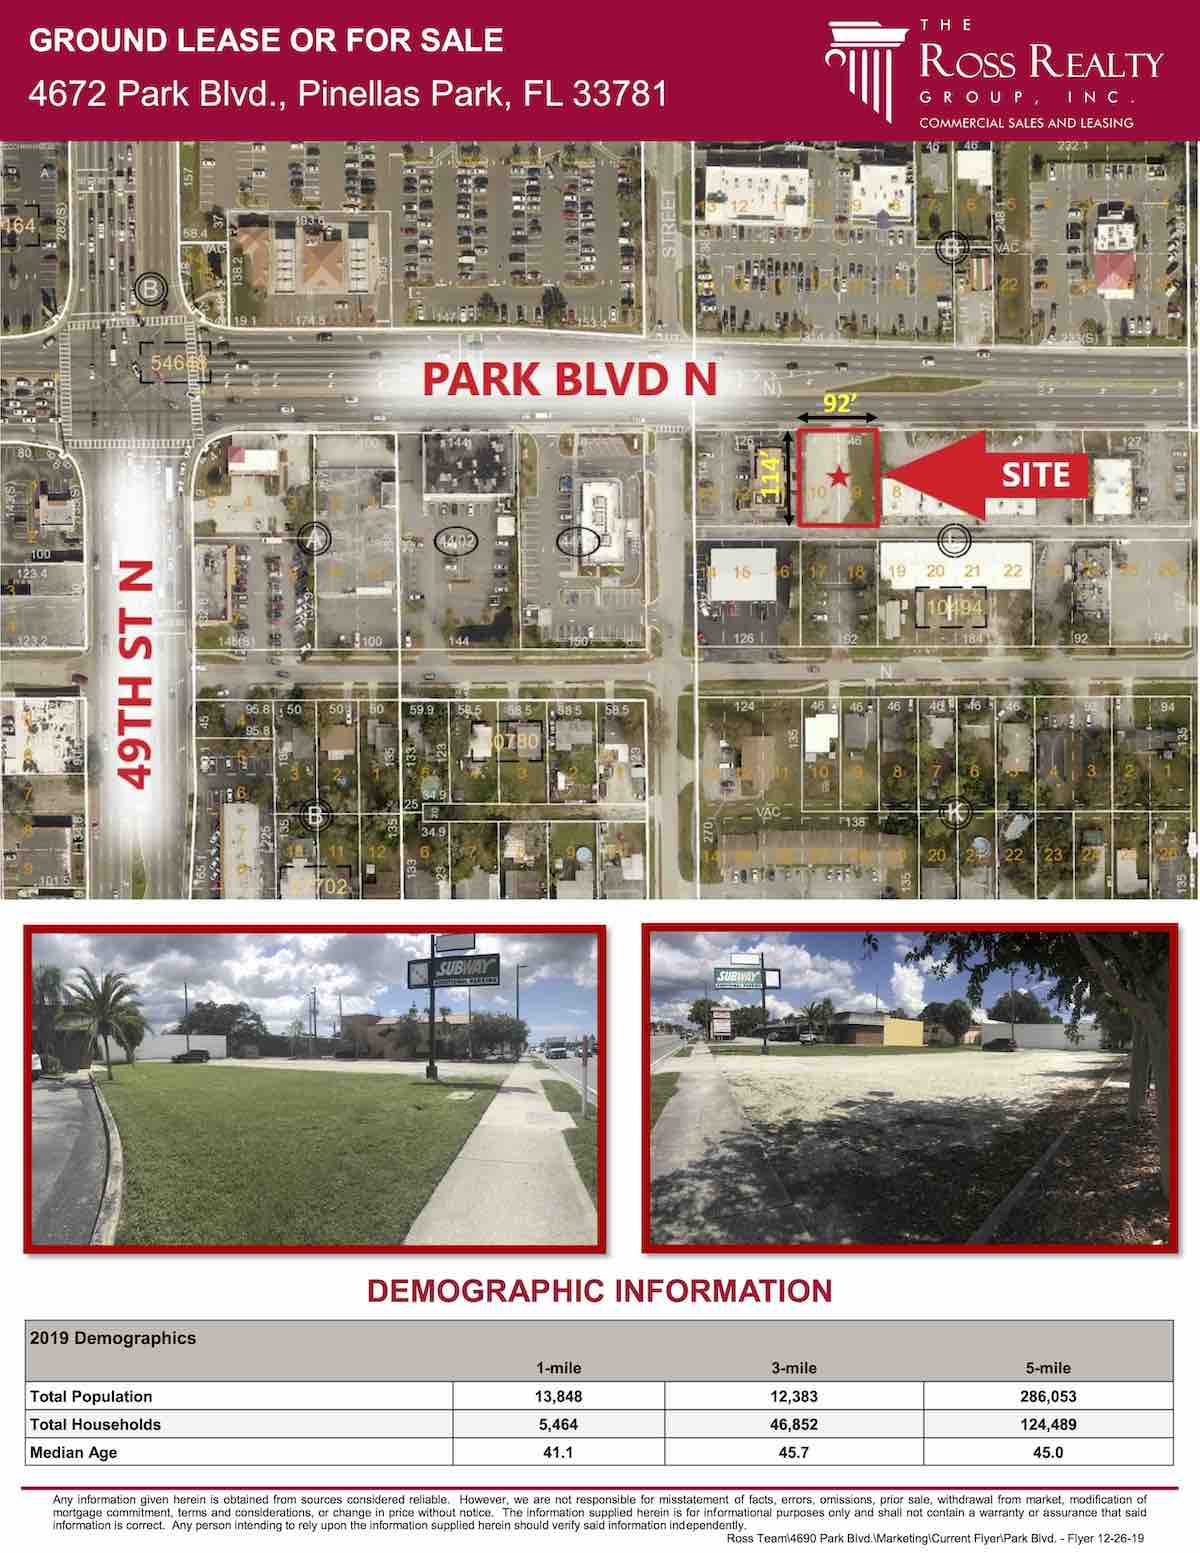 Tampa Commercial Real Estate - GROUND LEASE OR FOR SALE - 4672 Park Blvd., Pinellas Park, FL 33781 P2